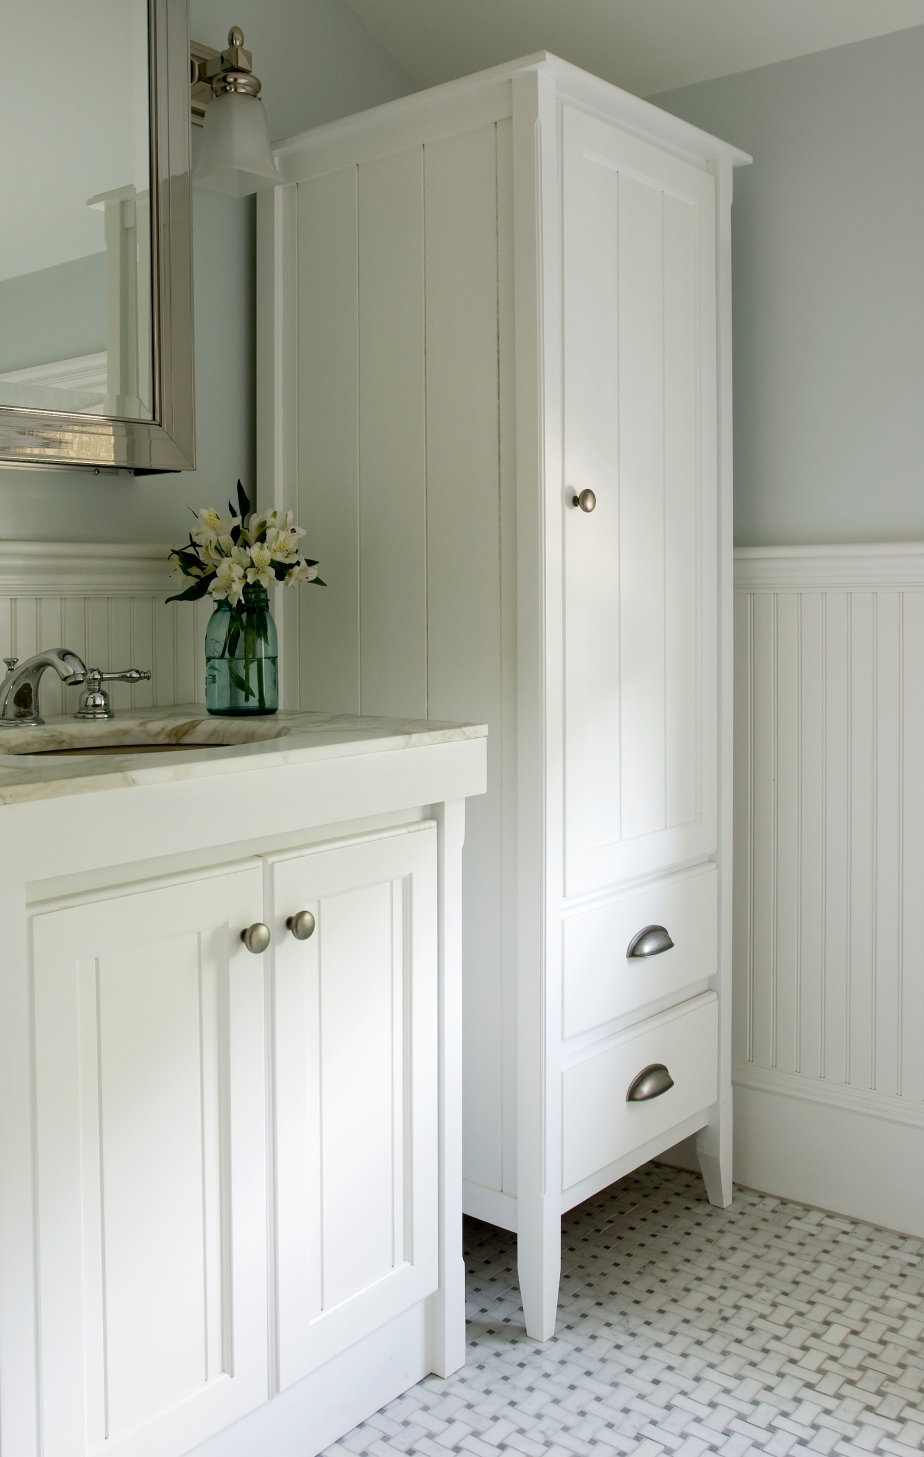 Making the Most of Small Bathroom Spaces